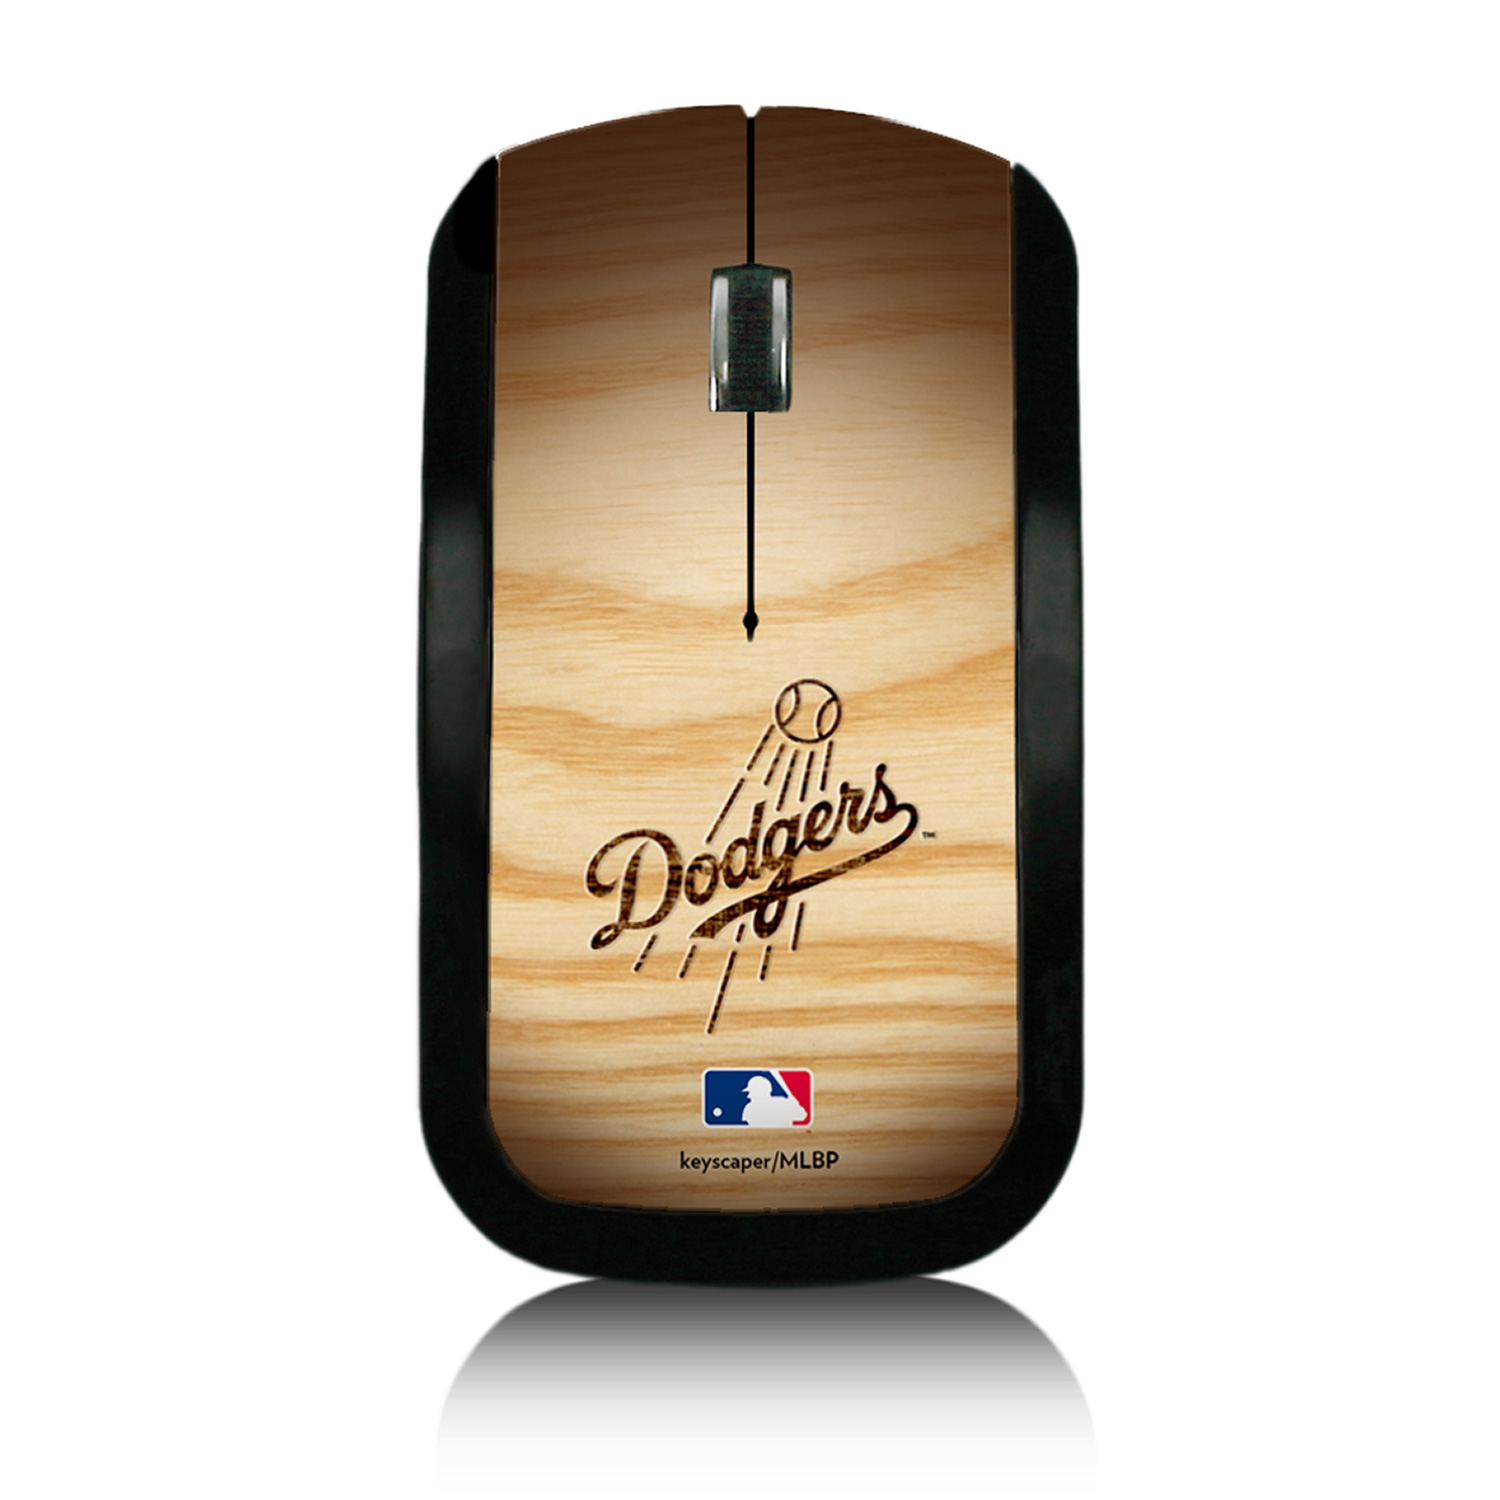 Los Angeles Dodgers Wireless USB Mouse MLB